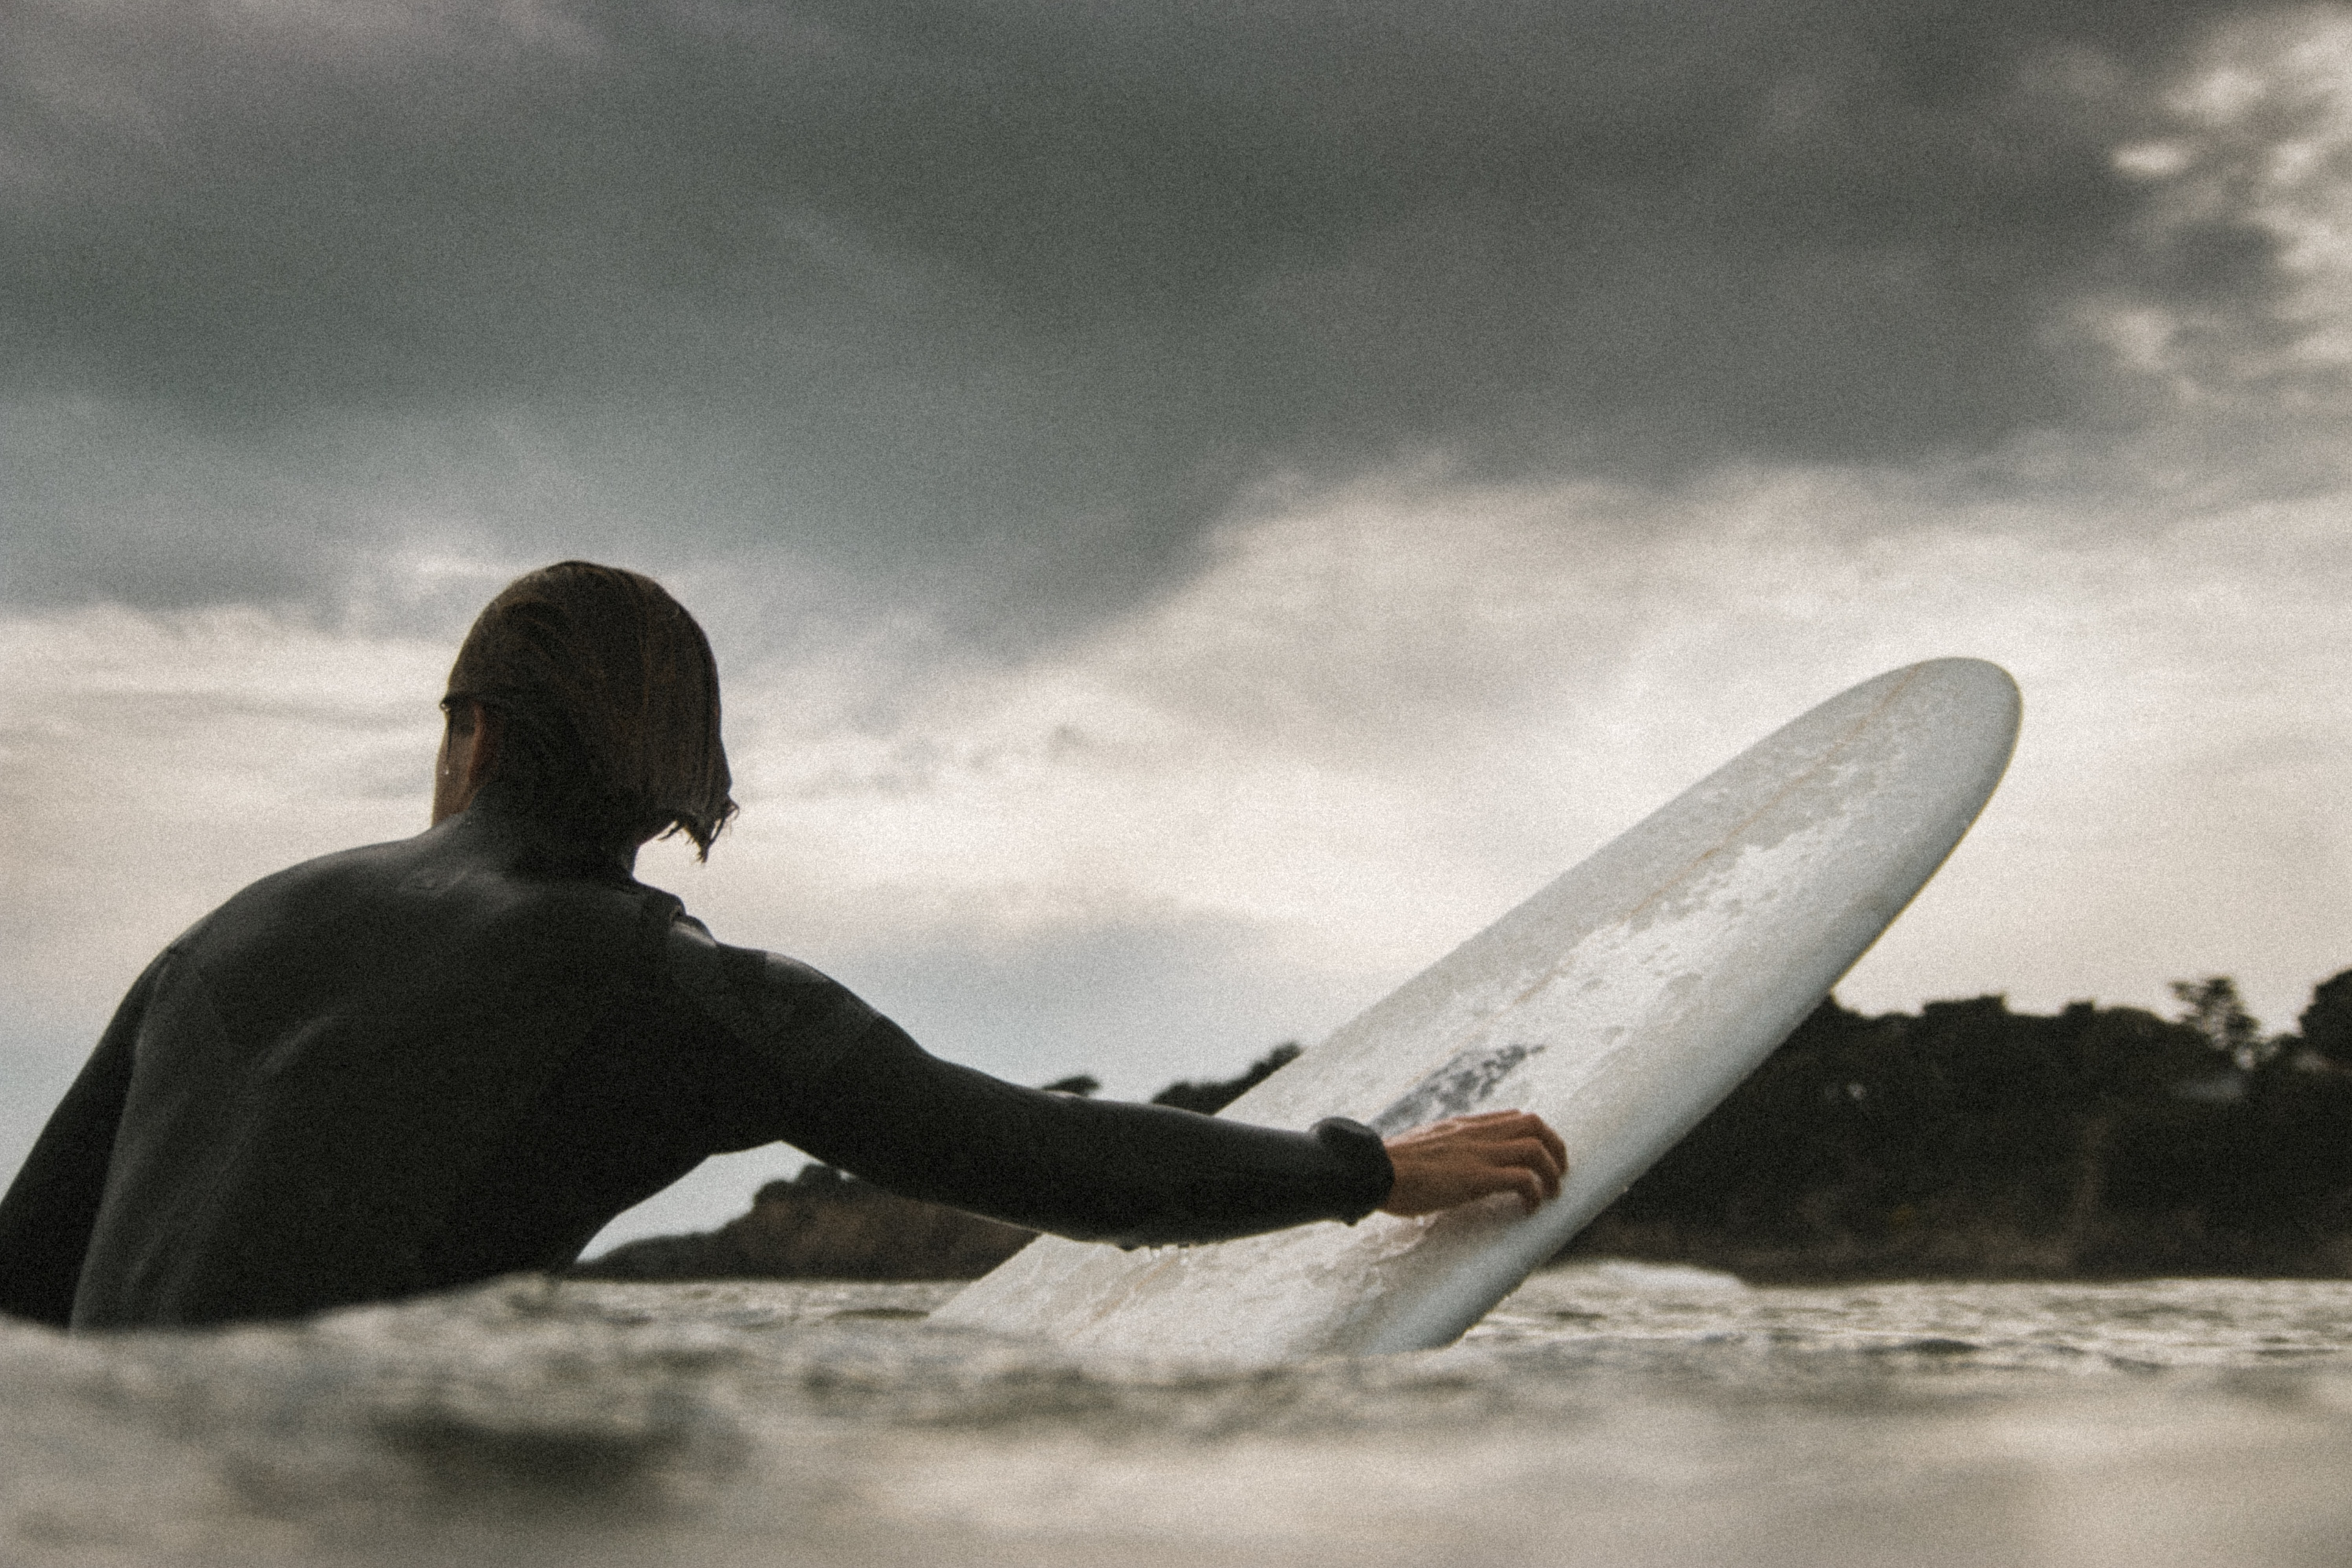 A black and white shot of a male surfer in the water, holding onto his surf board under a cloudy sky at Saint-Nazaire